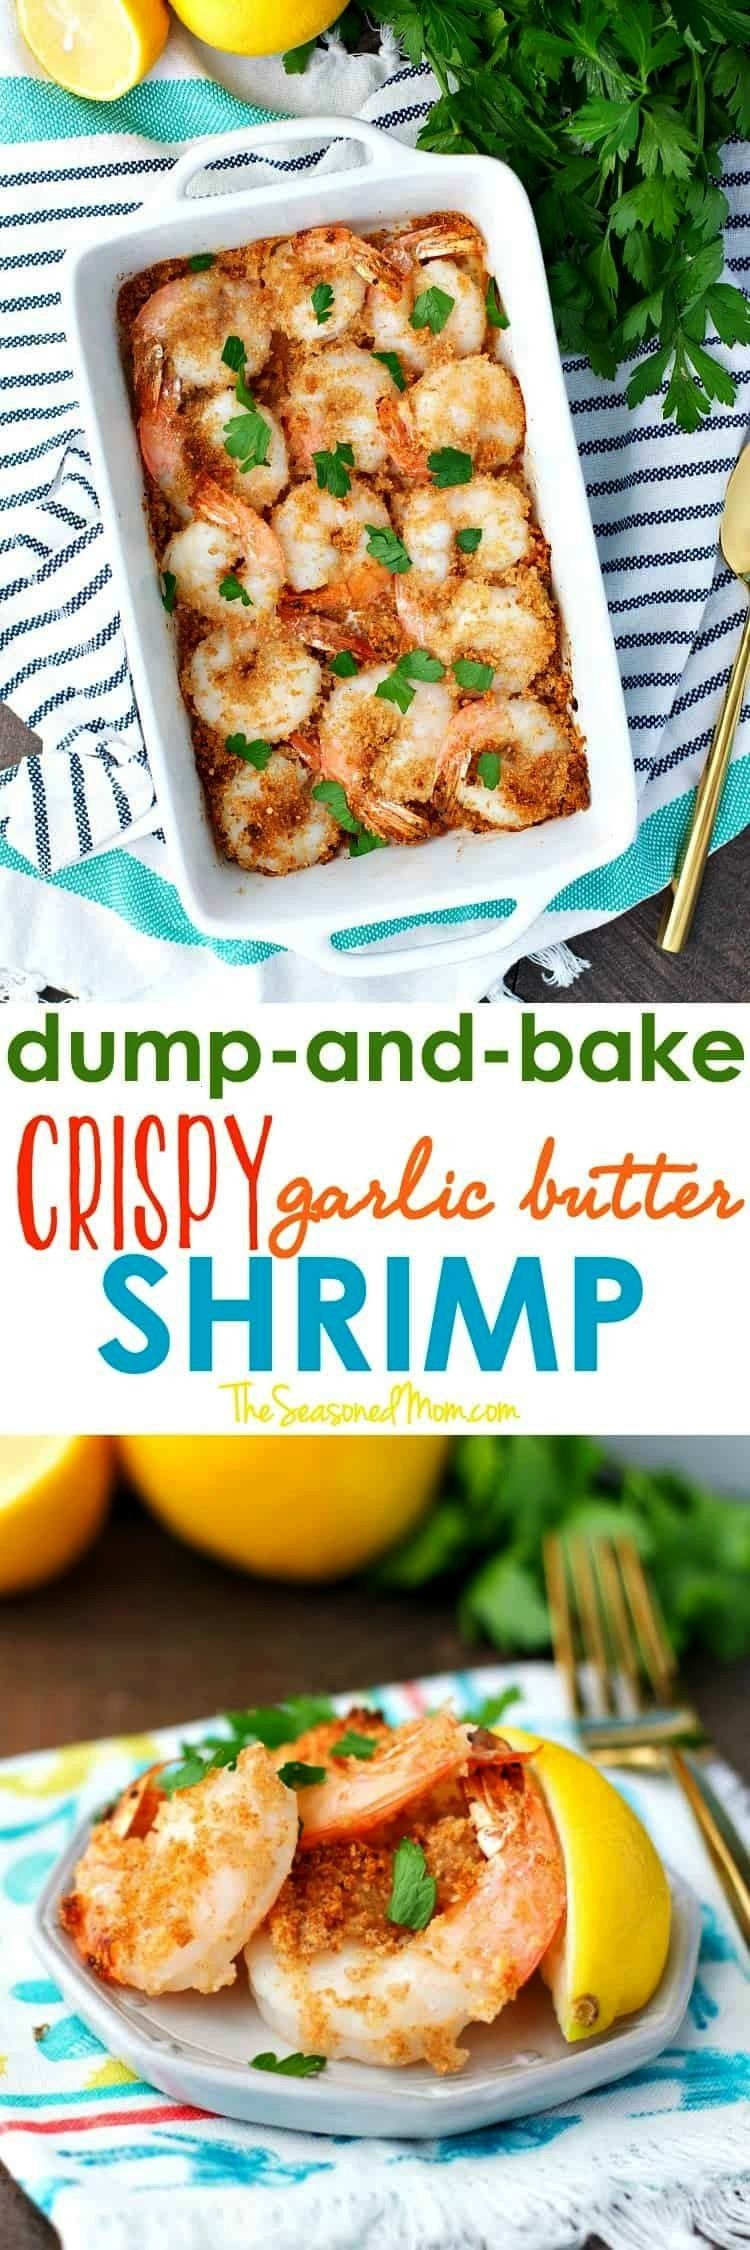 just 5 ingredients and no prep work, this Dump and Bake Crispy Garlic Butter Shrimp is a healthy di